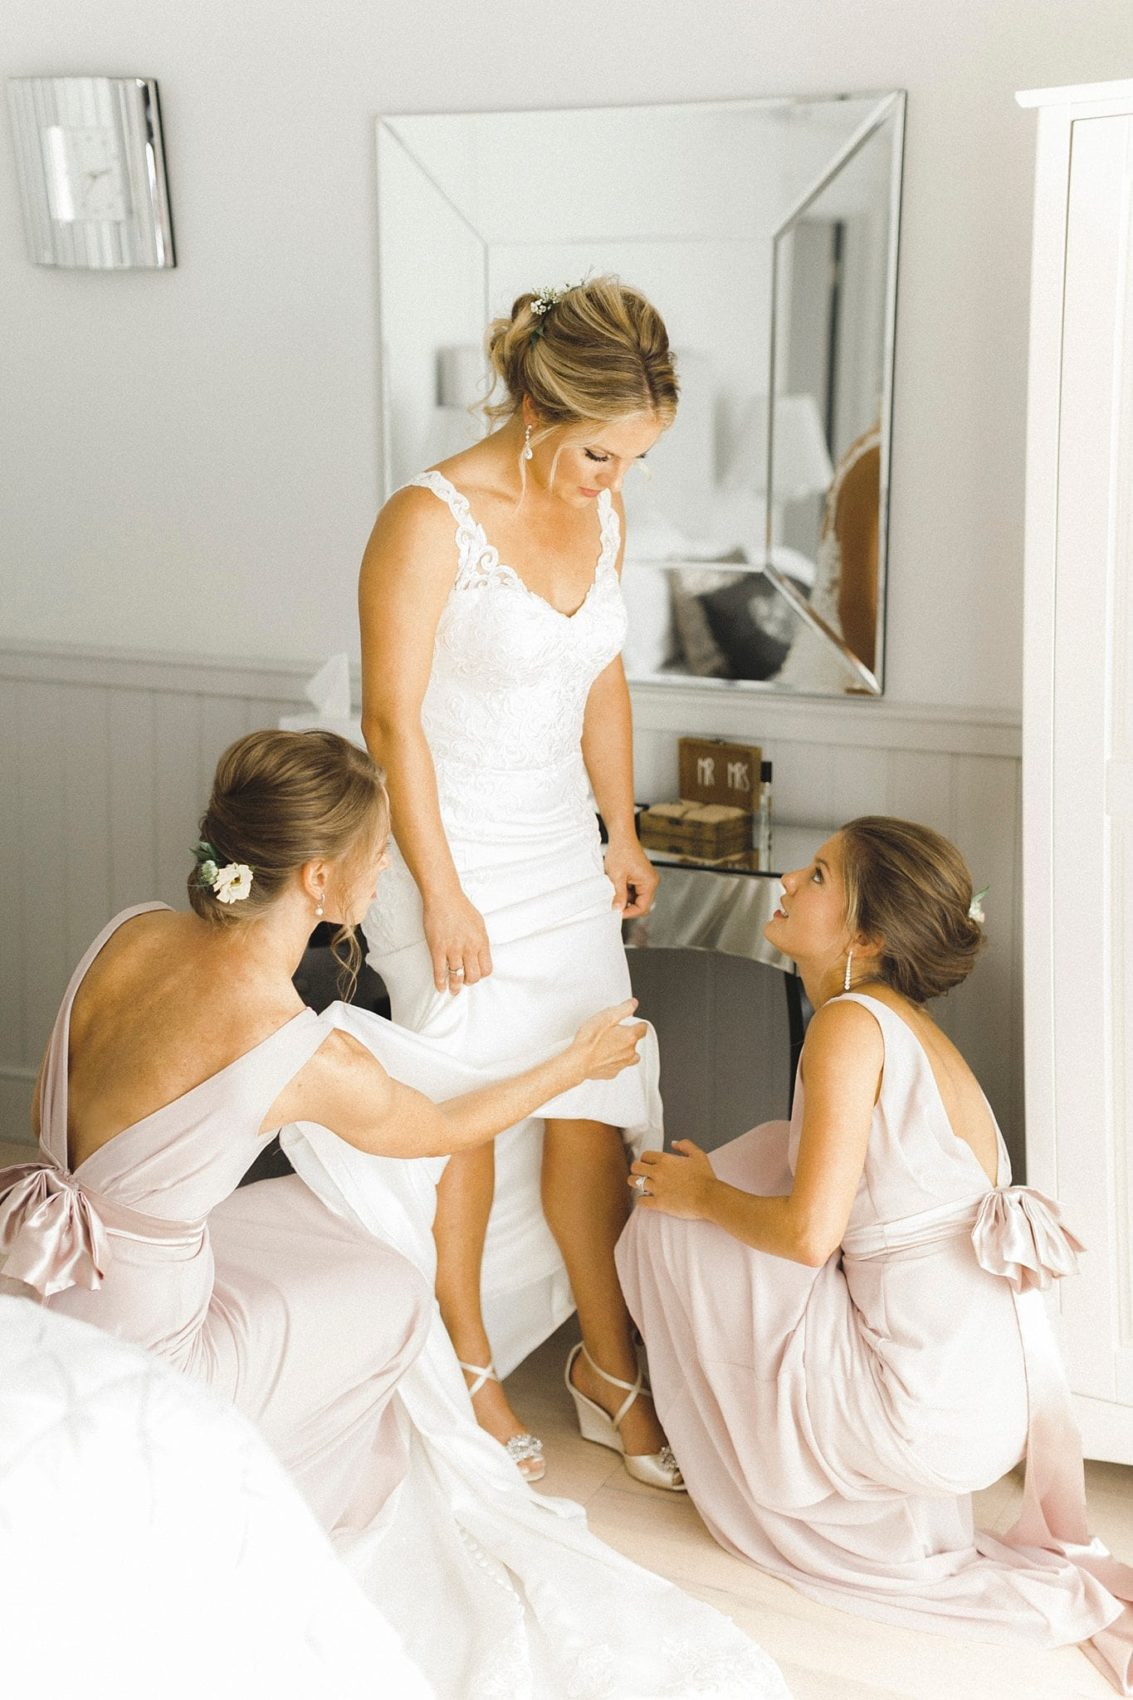 Girls, bride, bridesmaids, wedding dress, shoes, helping hand, right hand women